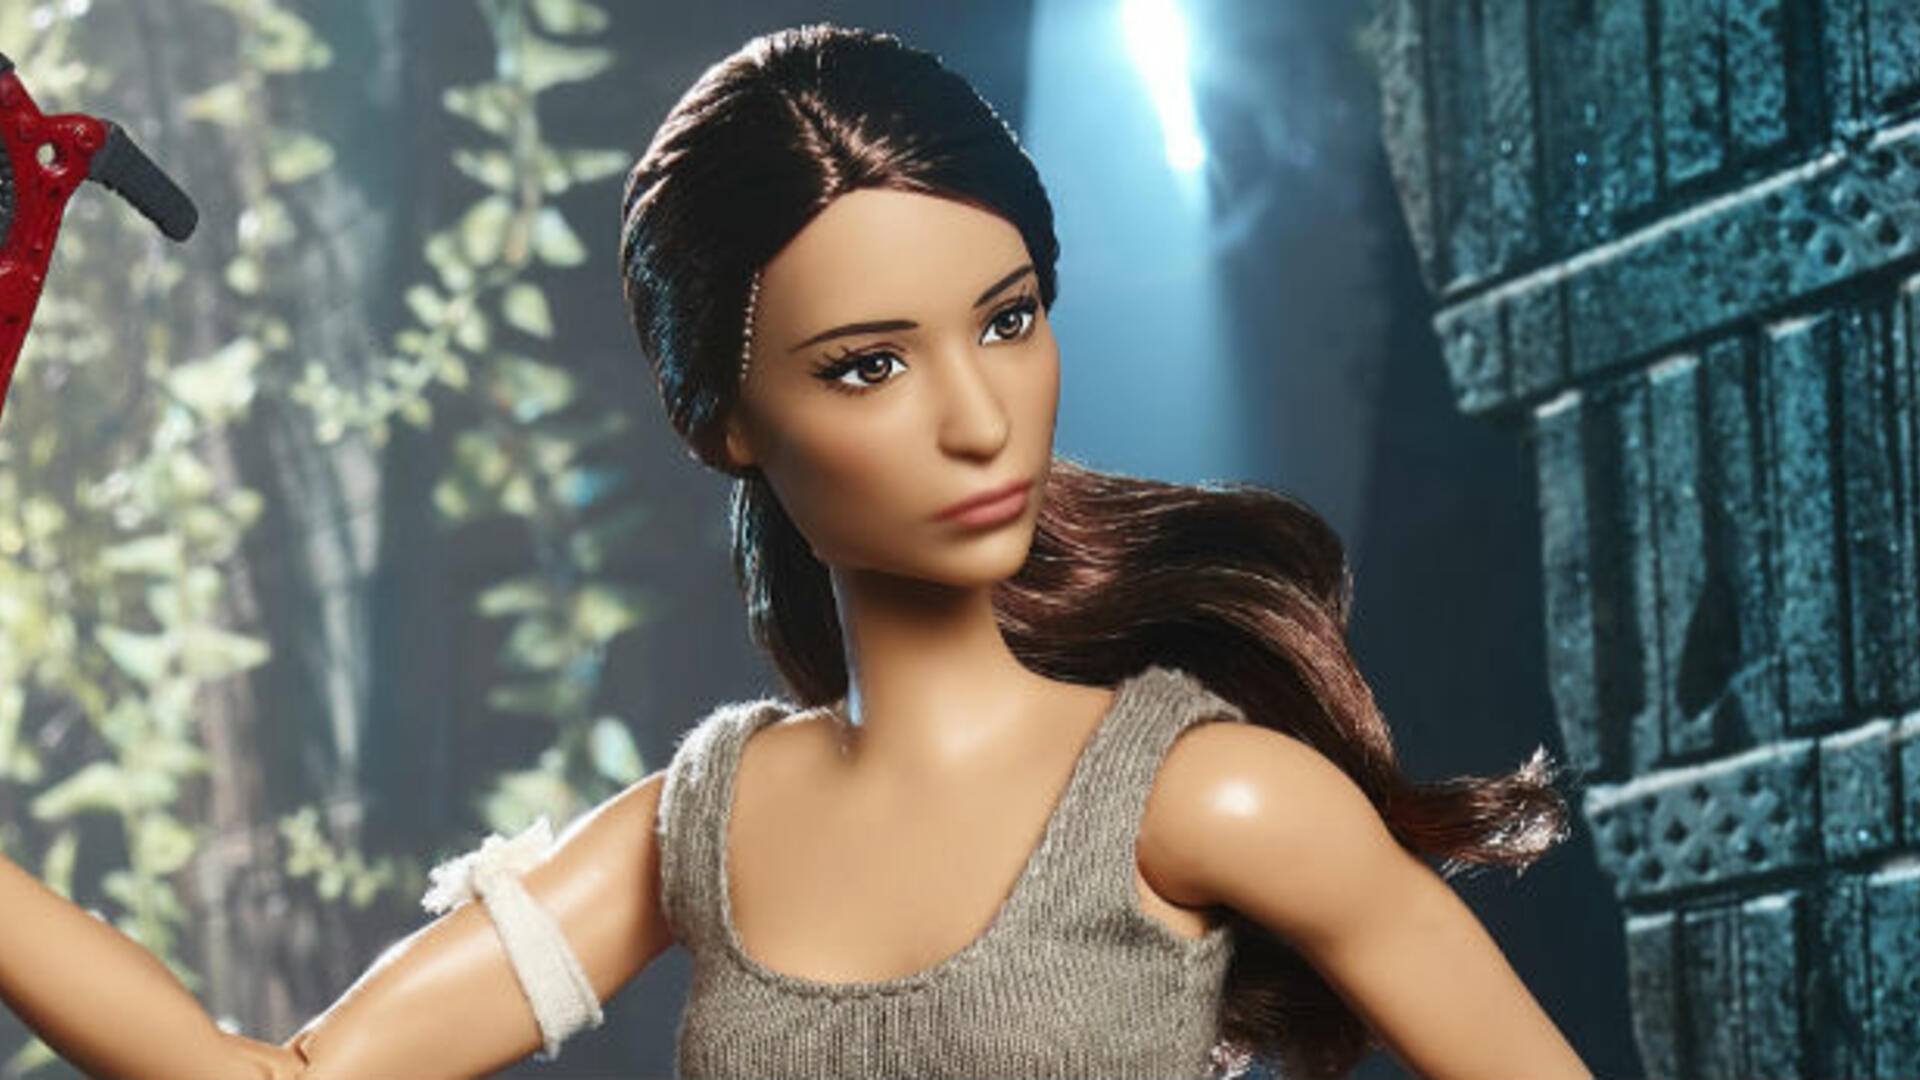 Tomb Raider Barbie Accessorizes Well with Death and Trauma